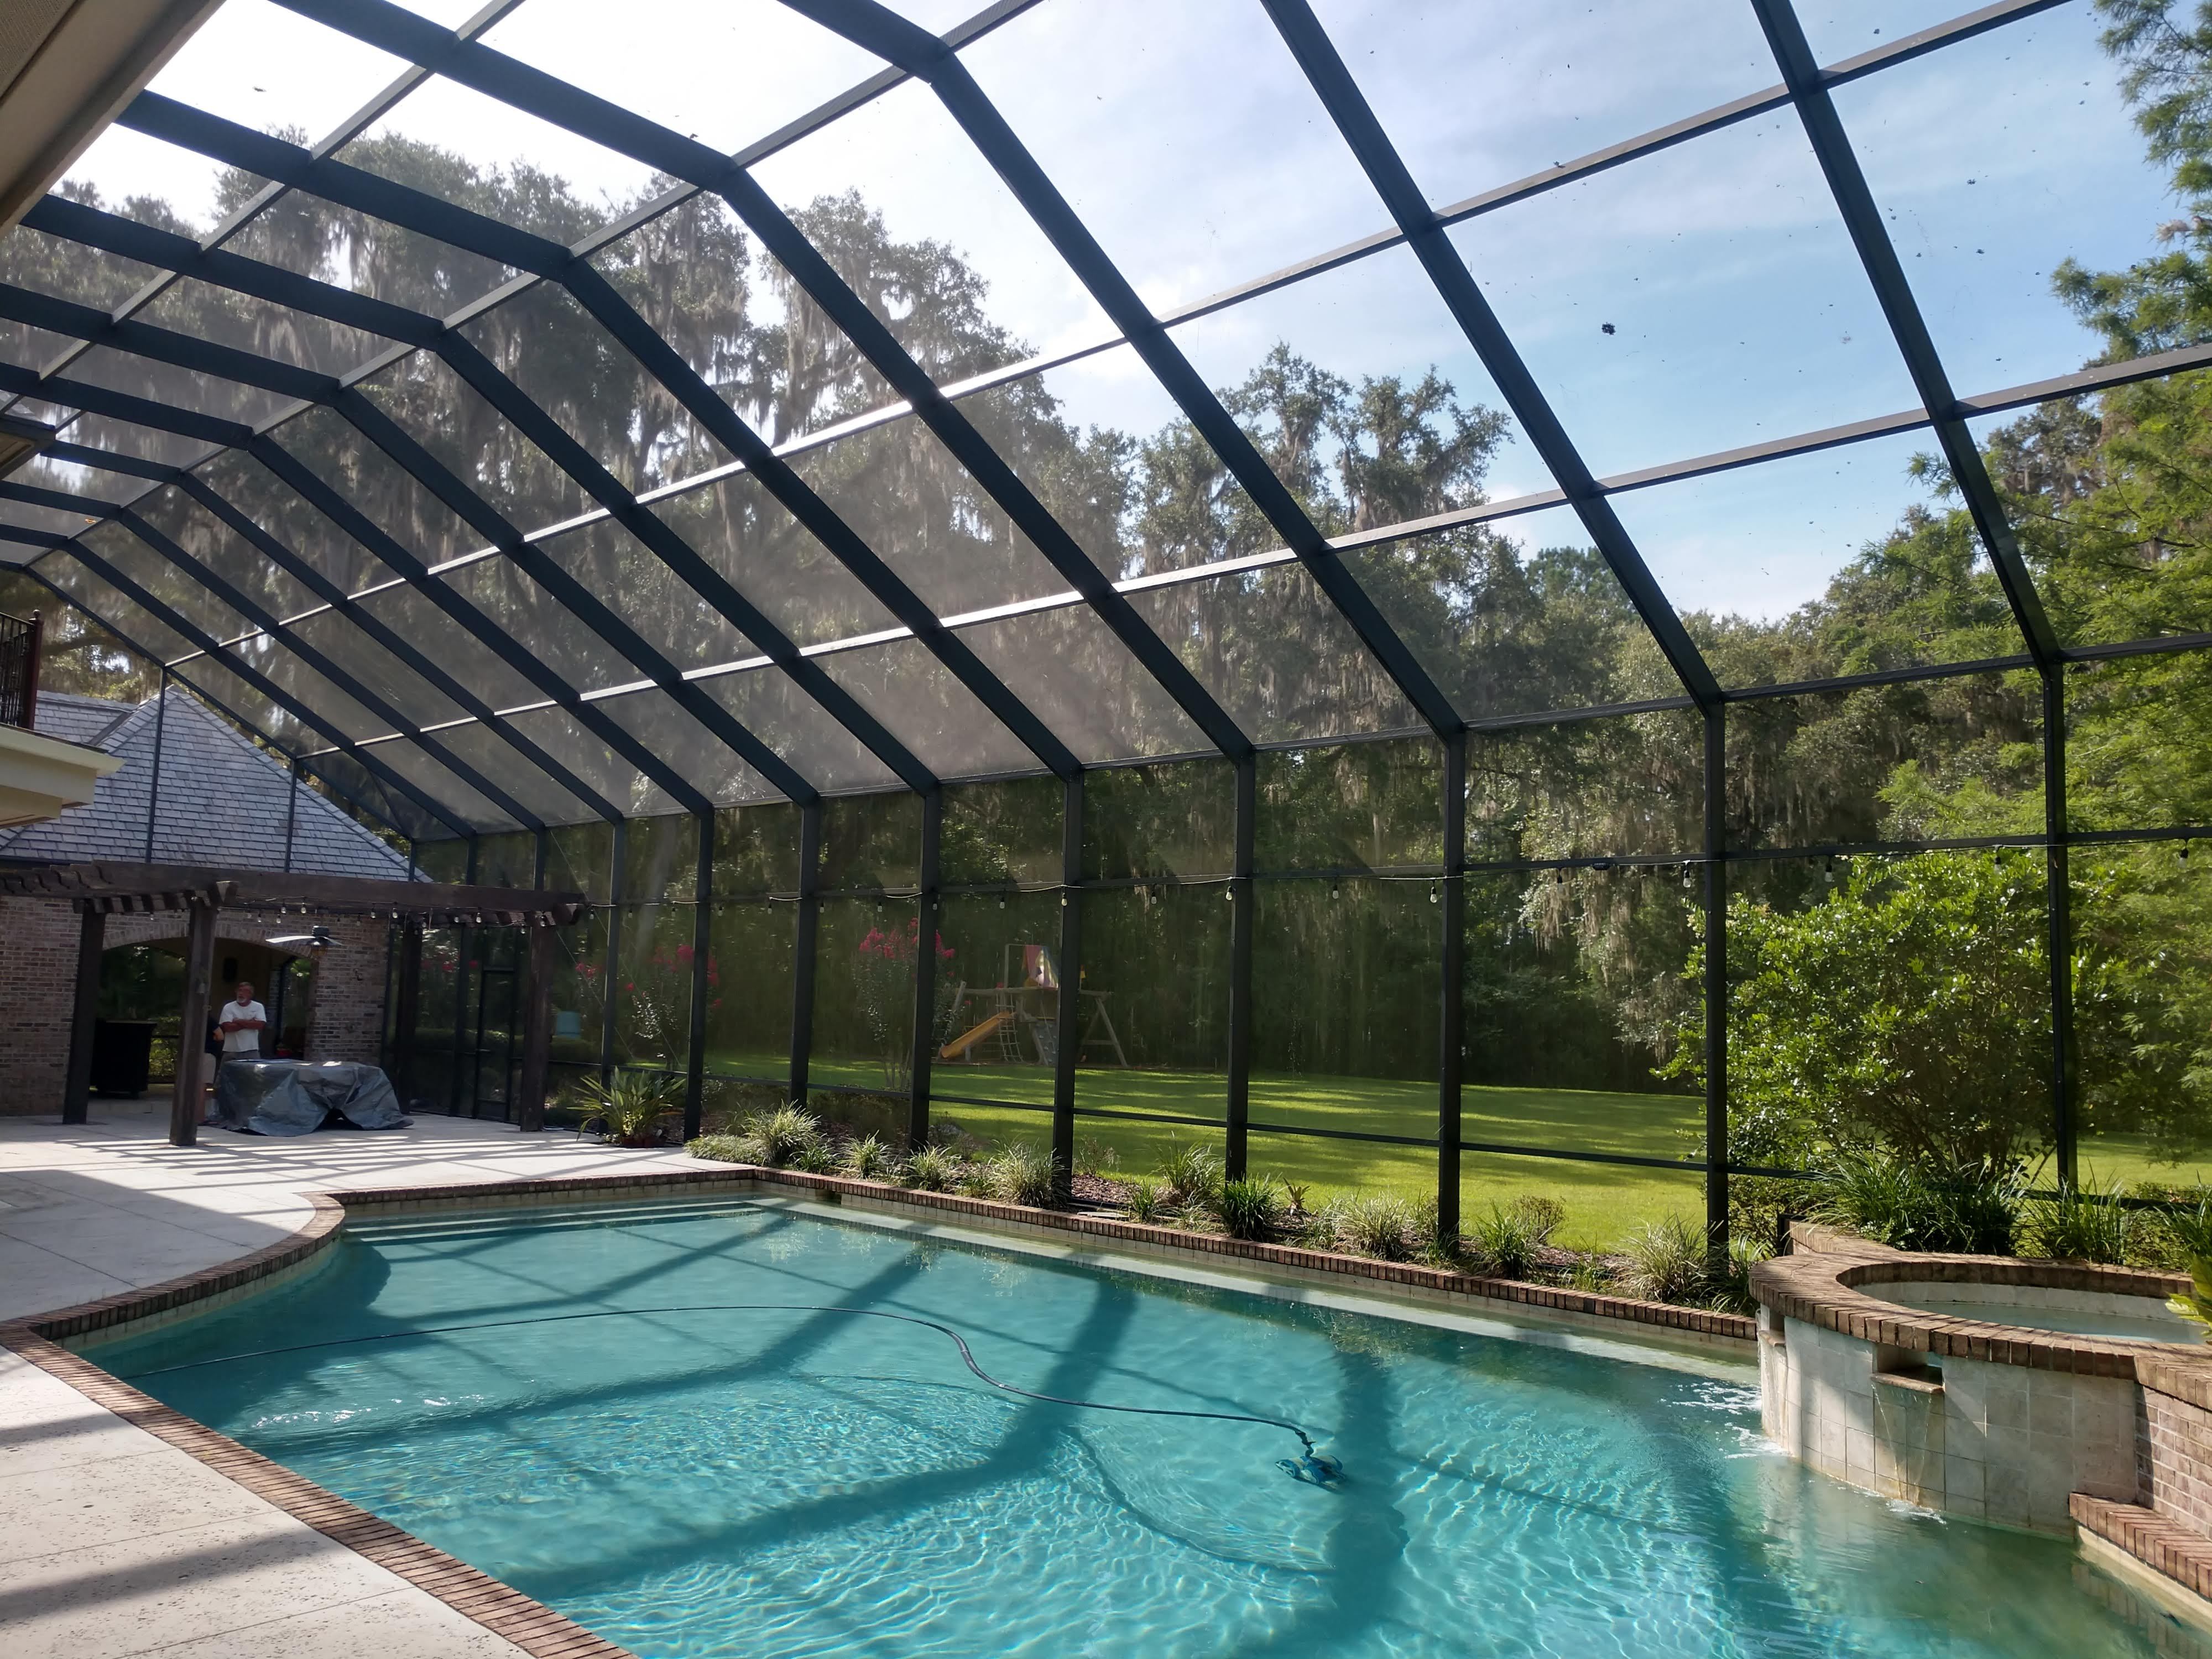 Pool Enclosure screen